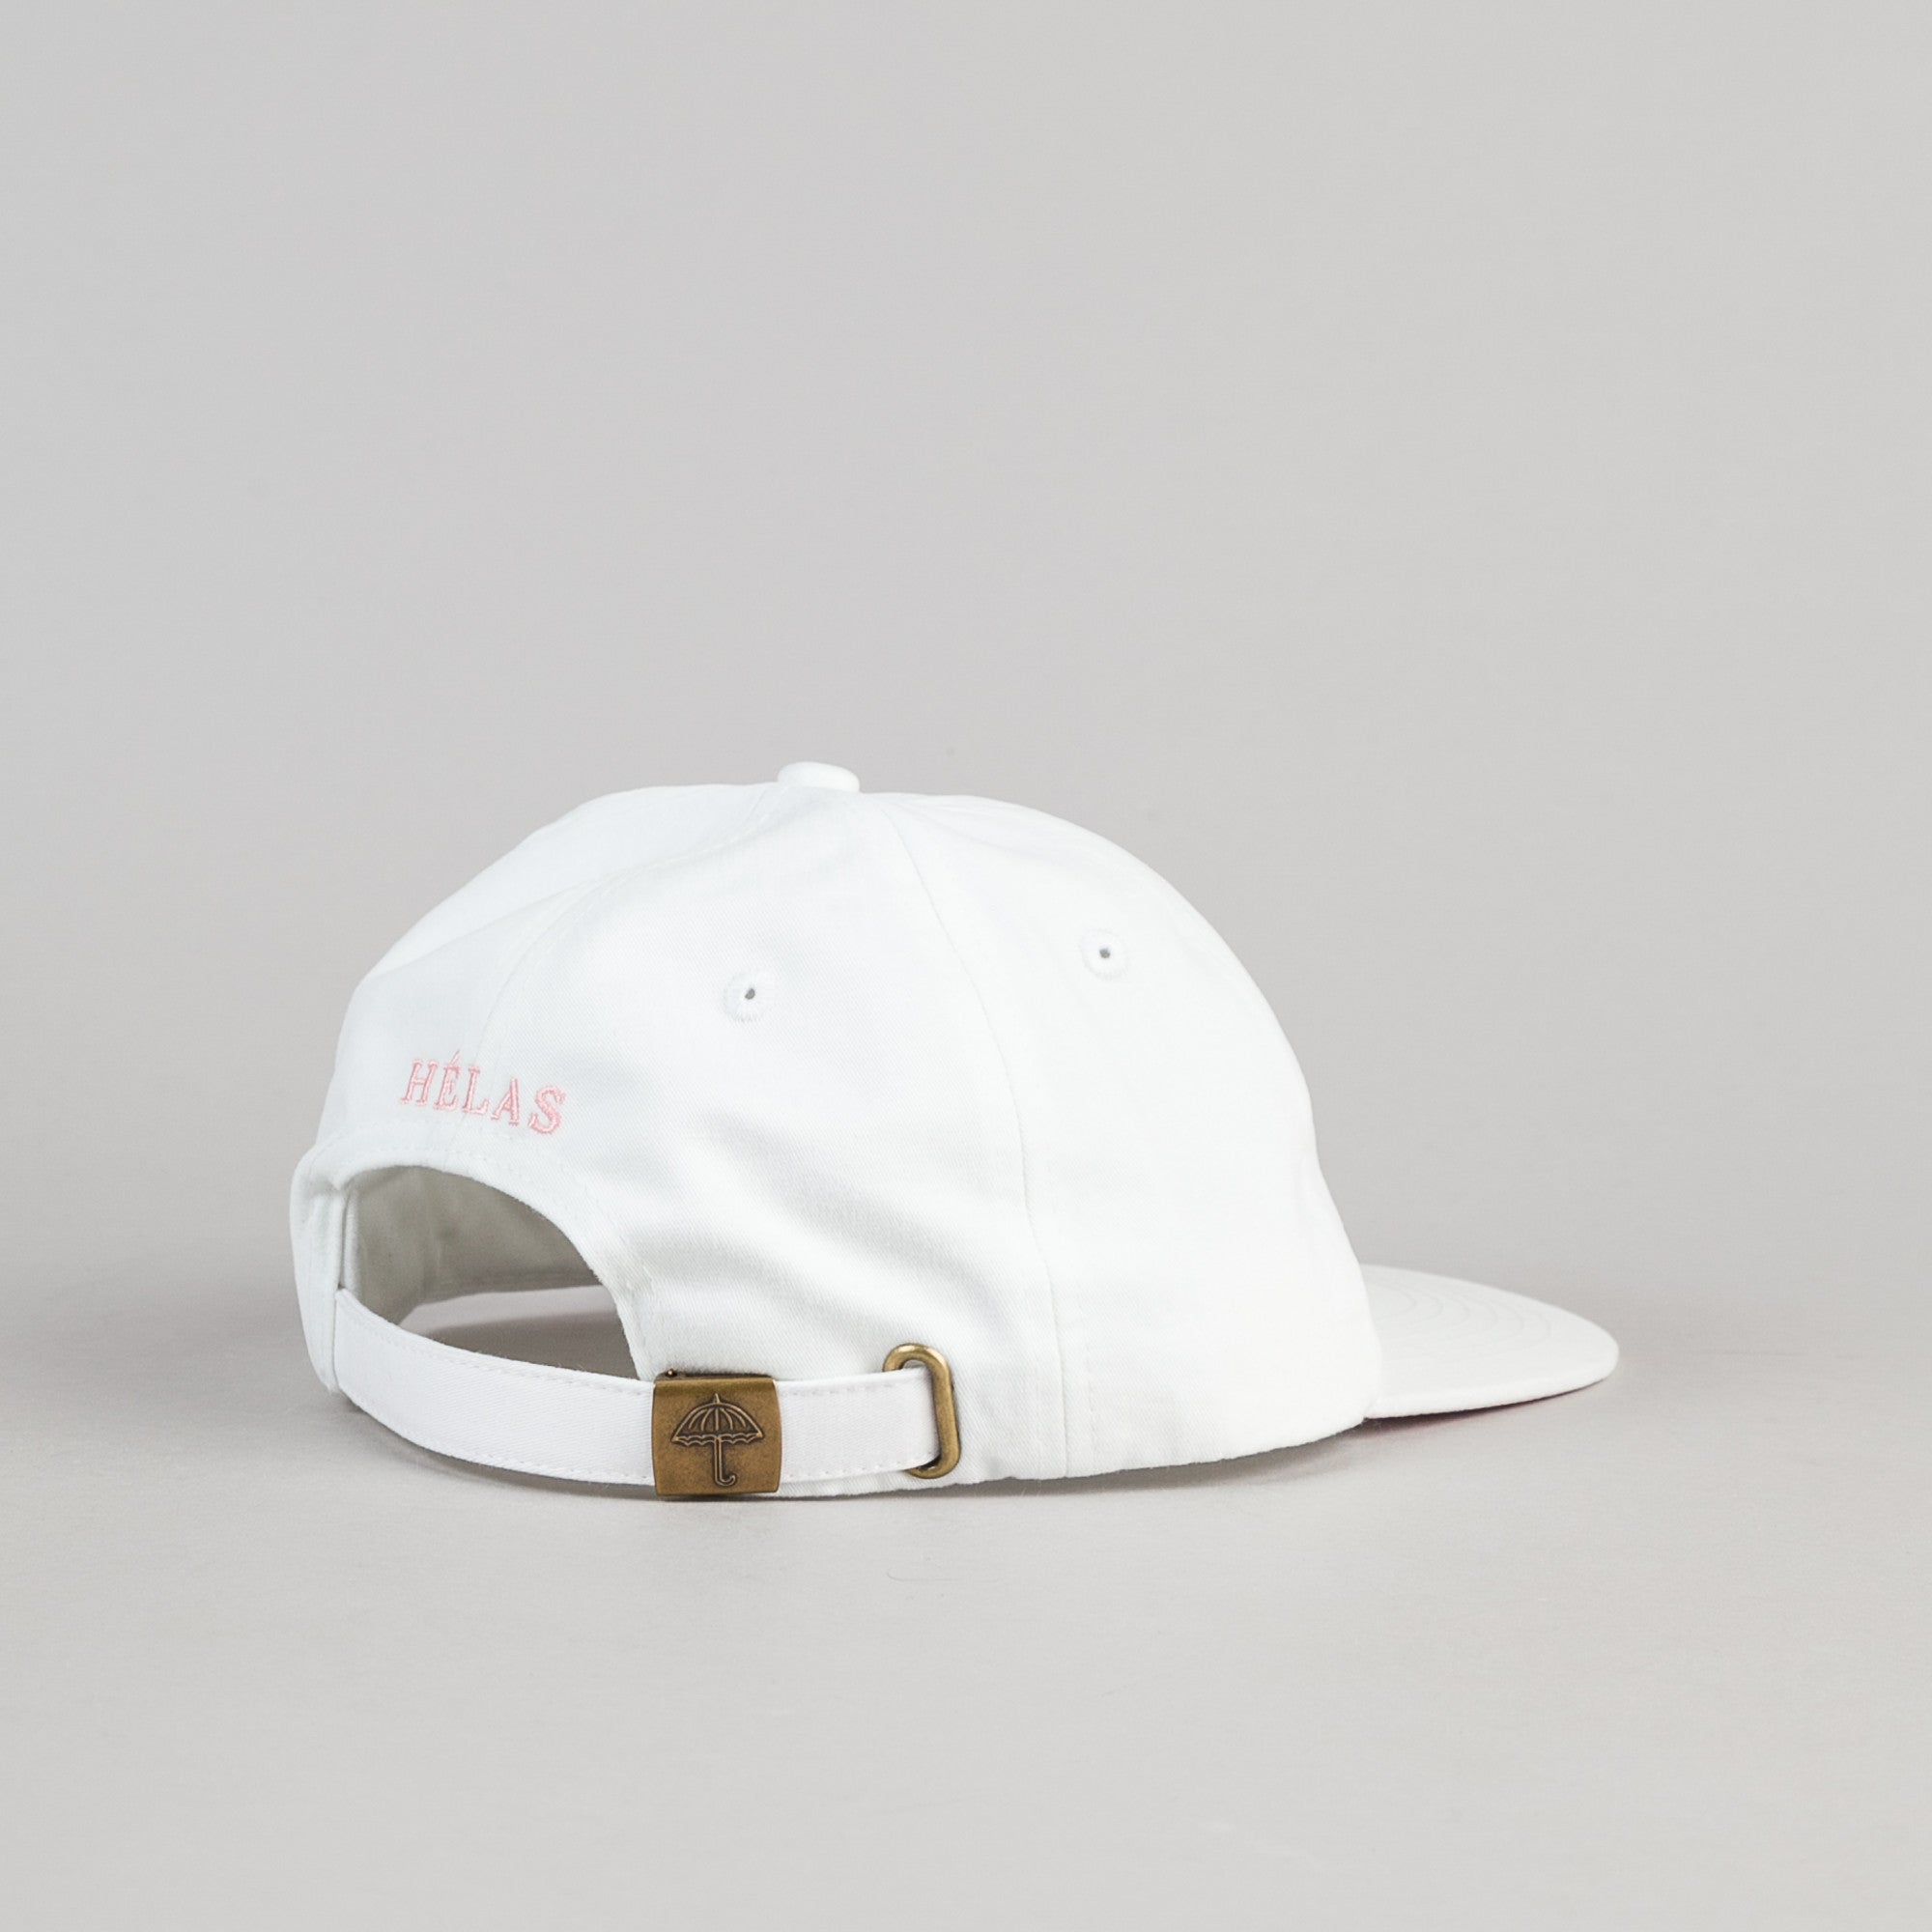 Helas Classic 6 Panel Cap - White / Pink